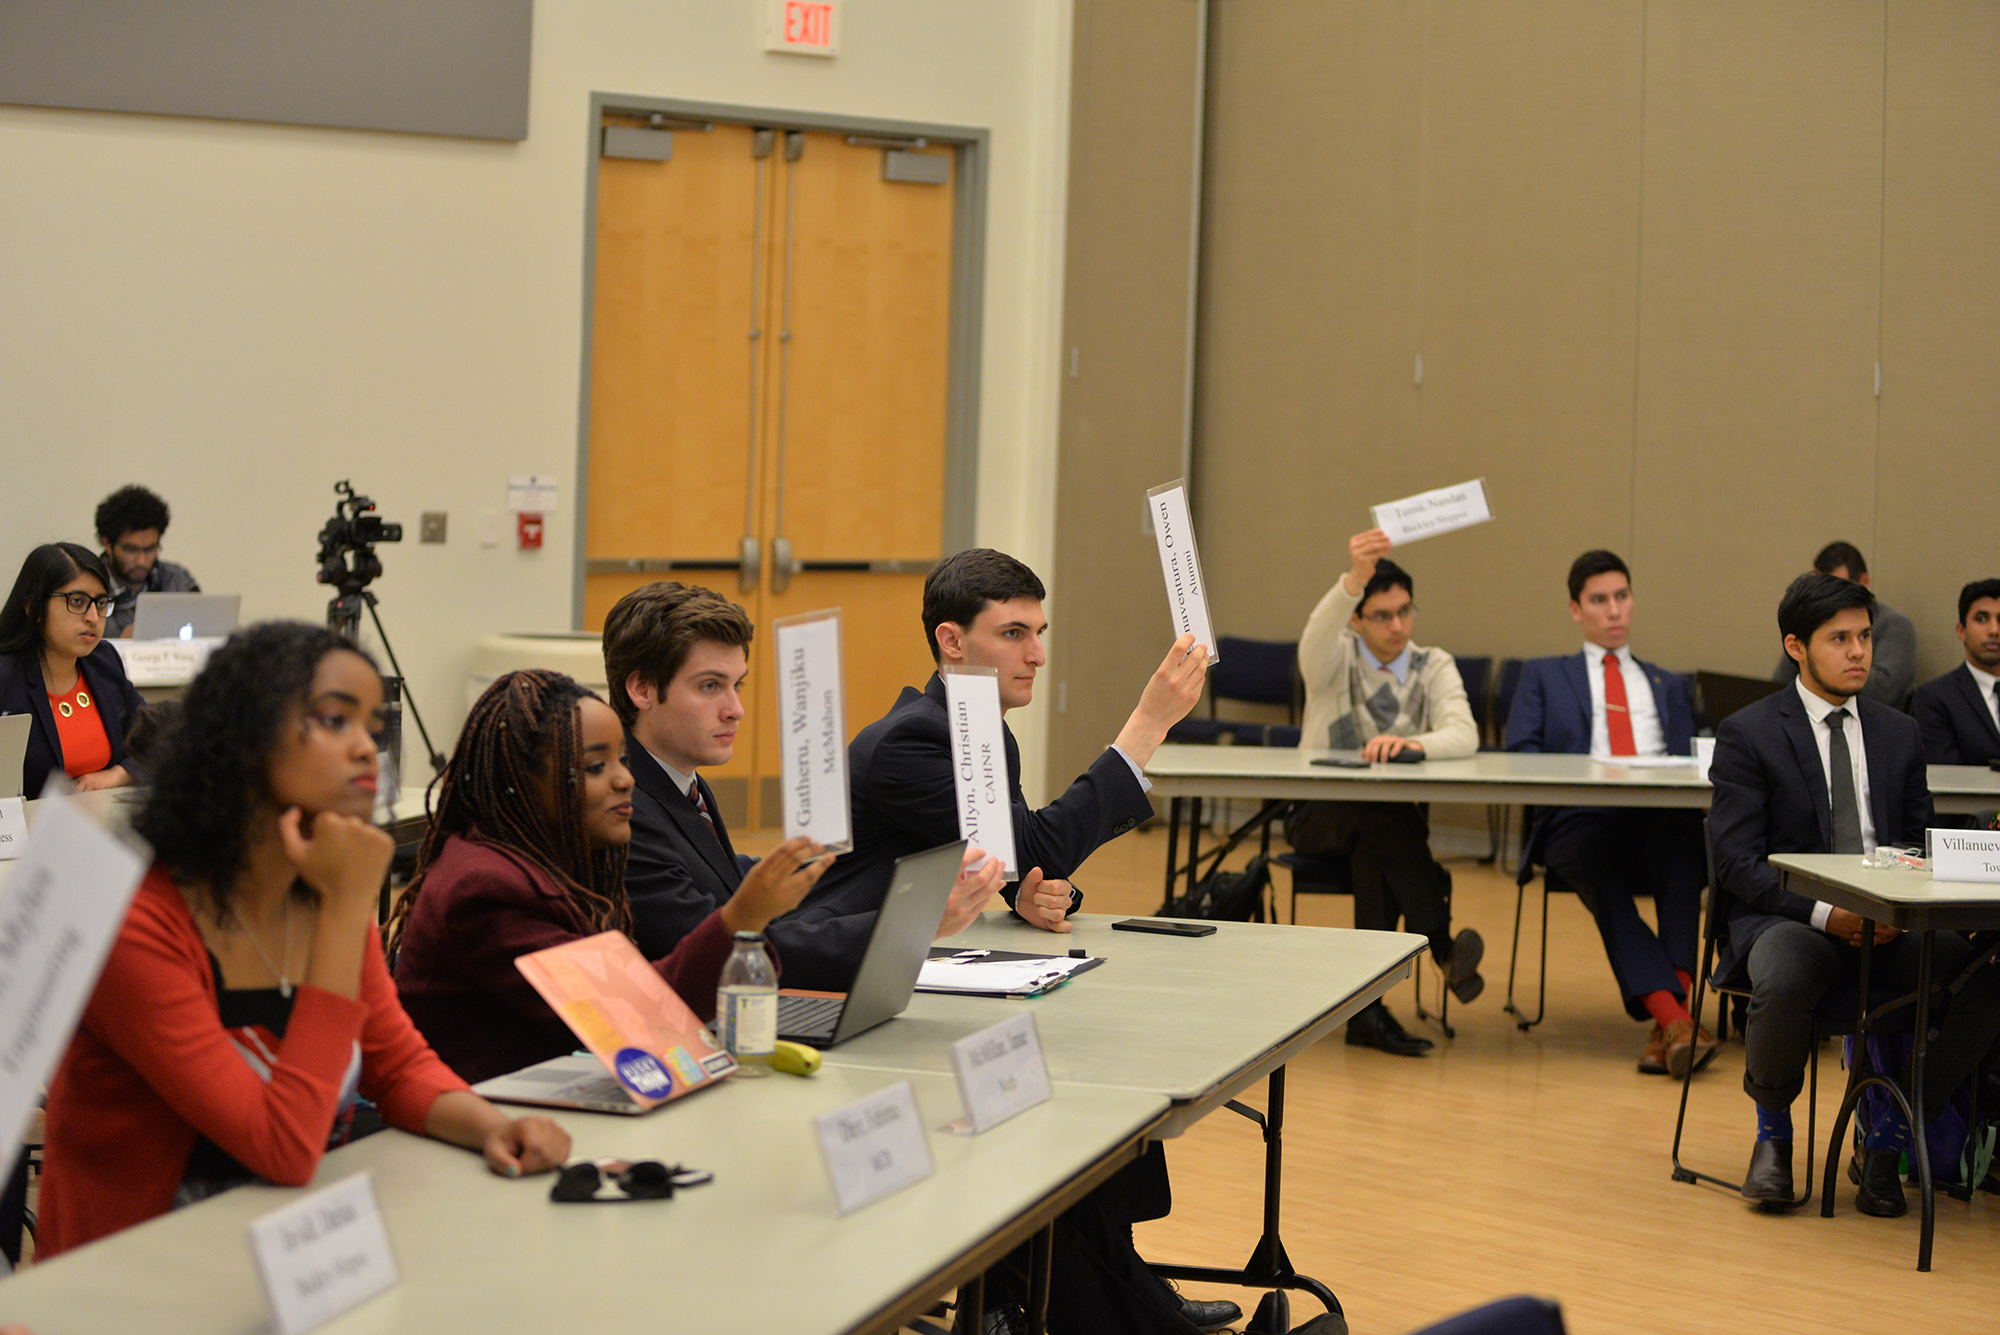 The Undergraduate student government meets in the SU ballroom for its weekly meeting on March 8, 2017. Items discussed included a motion to ask the Foundation to not invest in fossil fuels and a motion to add a temporary justice to fill in for Chief Justice Andrew Stern during hearings on the presidential race. Stern cannot serve on such hearings because he is involved in the proceedings. (Amar Batra/ The Daily Campus)